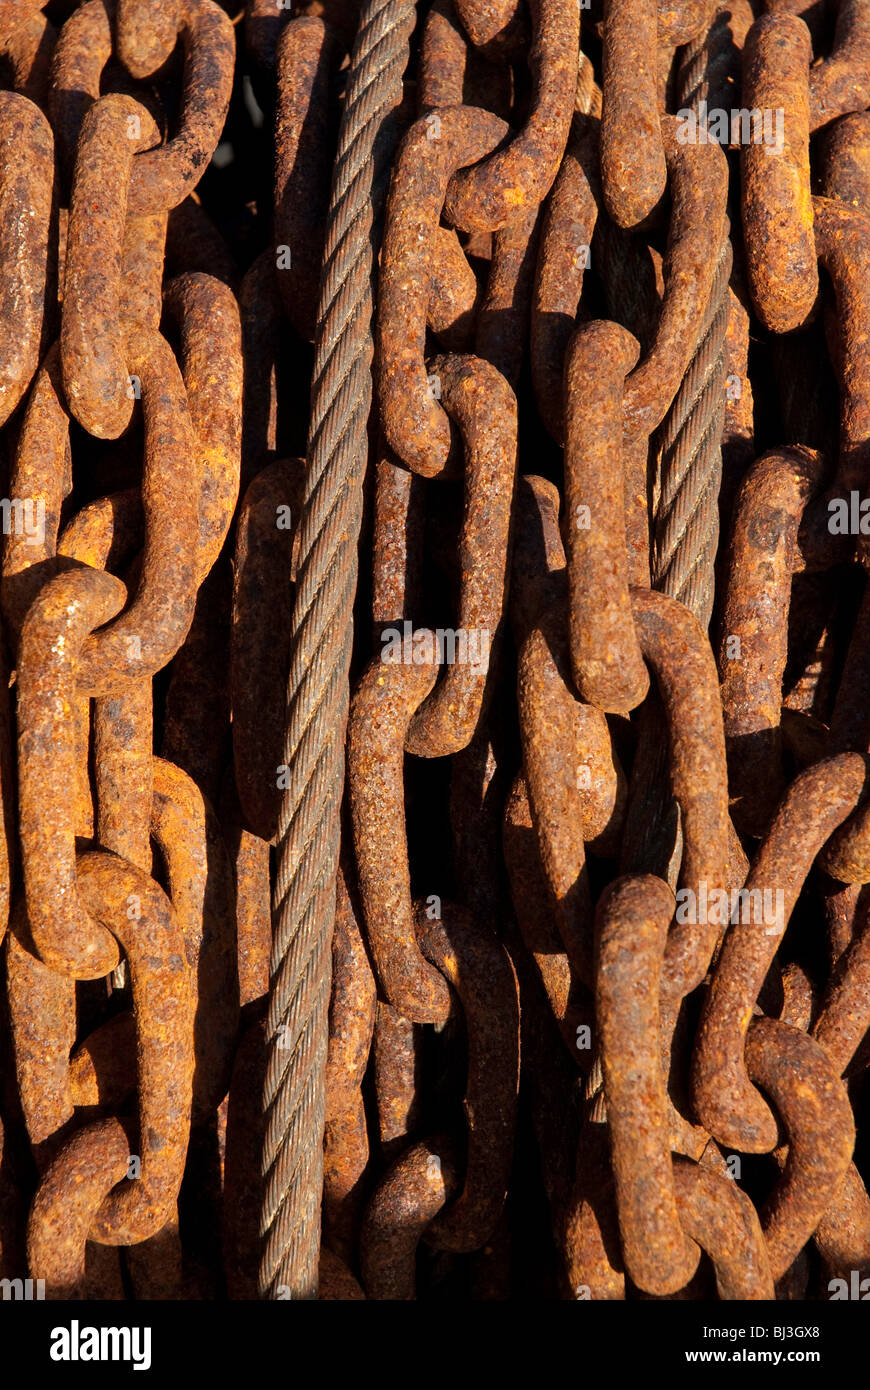 Close up of rusty metal chains - Stock Image